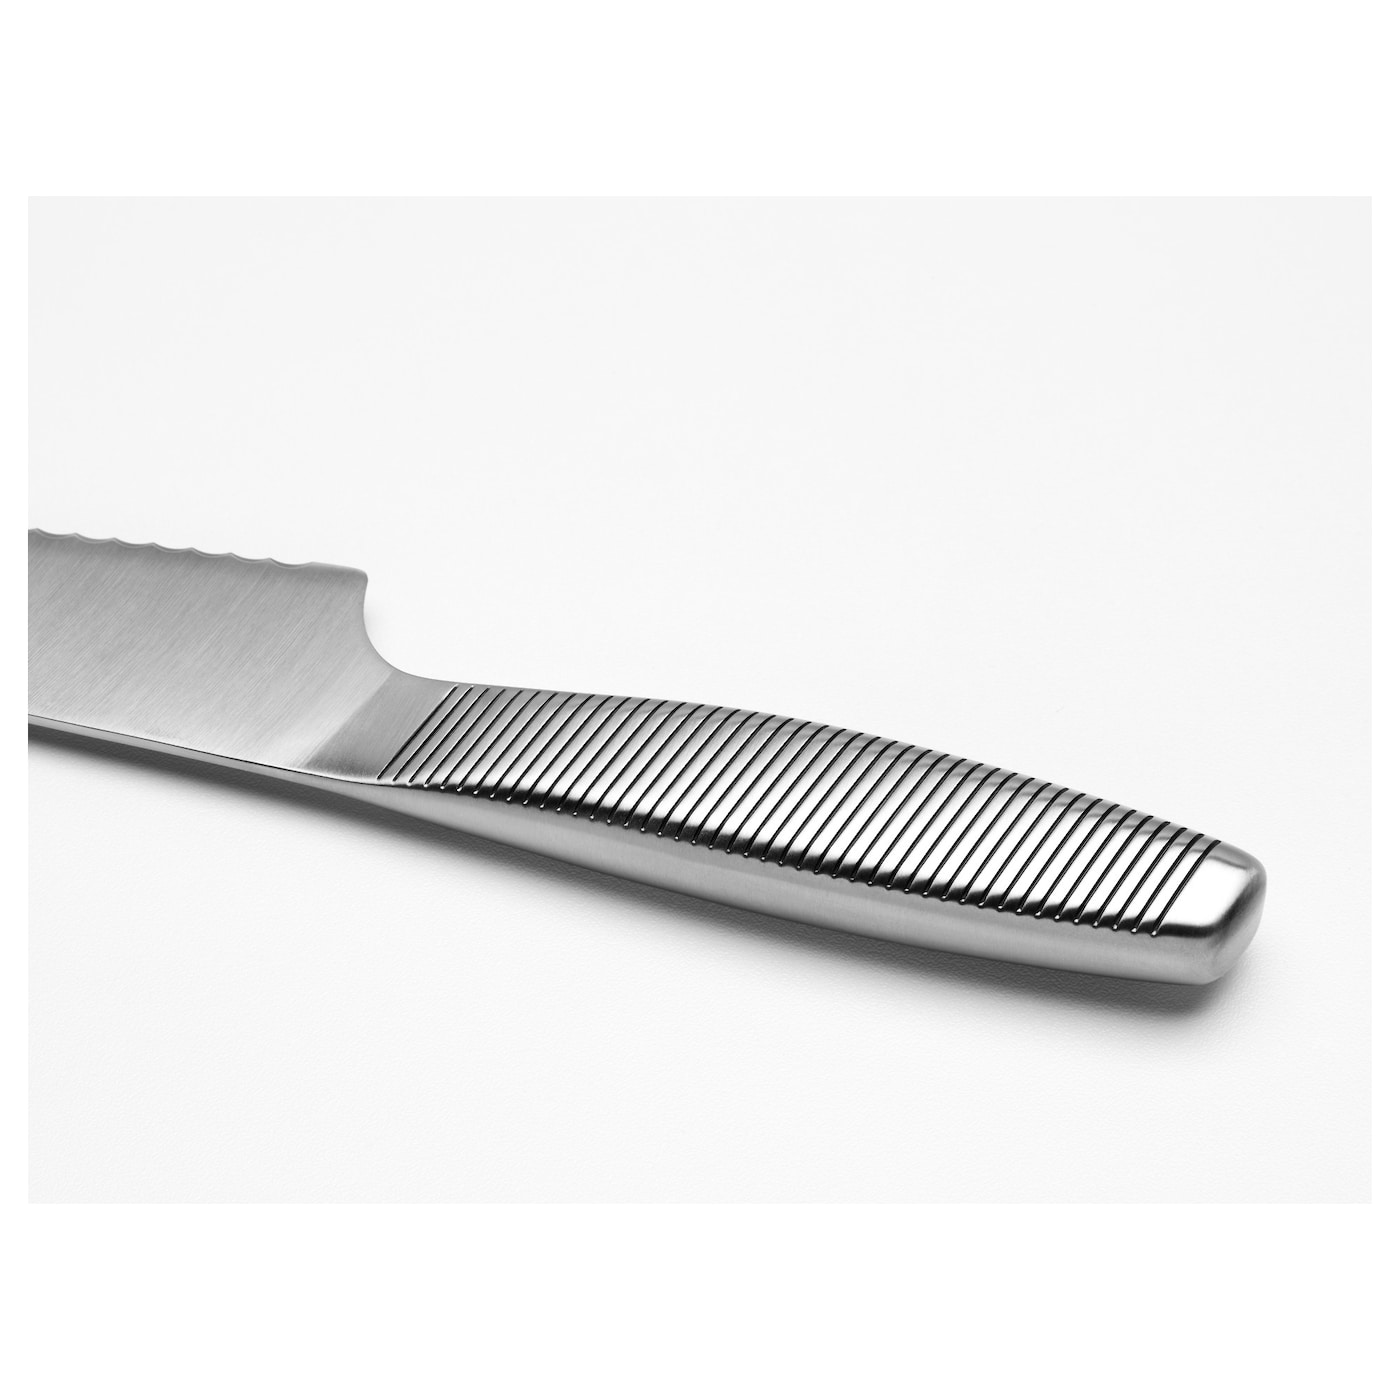 IKEA IKEA 365+ bread knife 15 year guarantee. Read about the terms in the guarantee brochure.